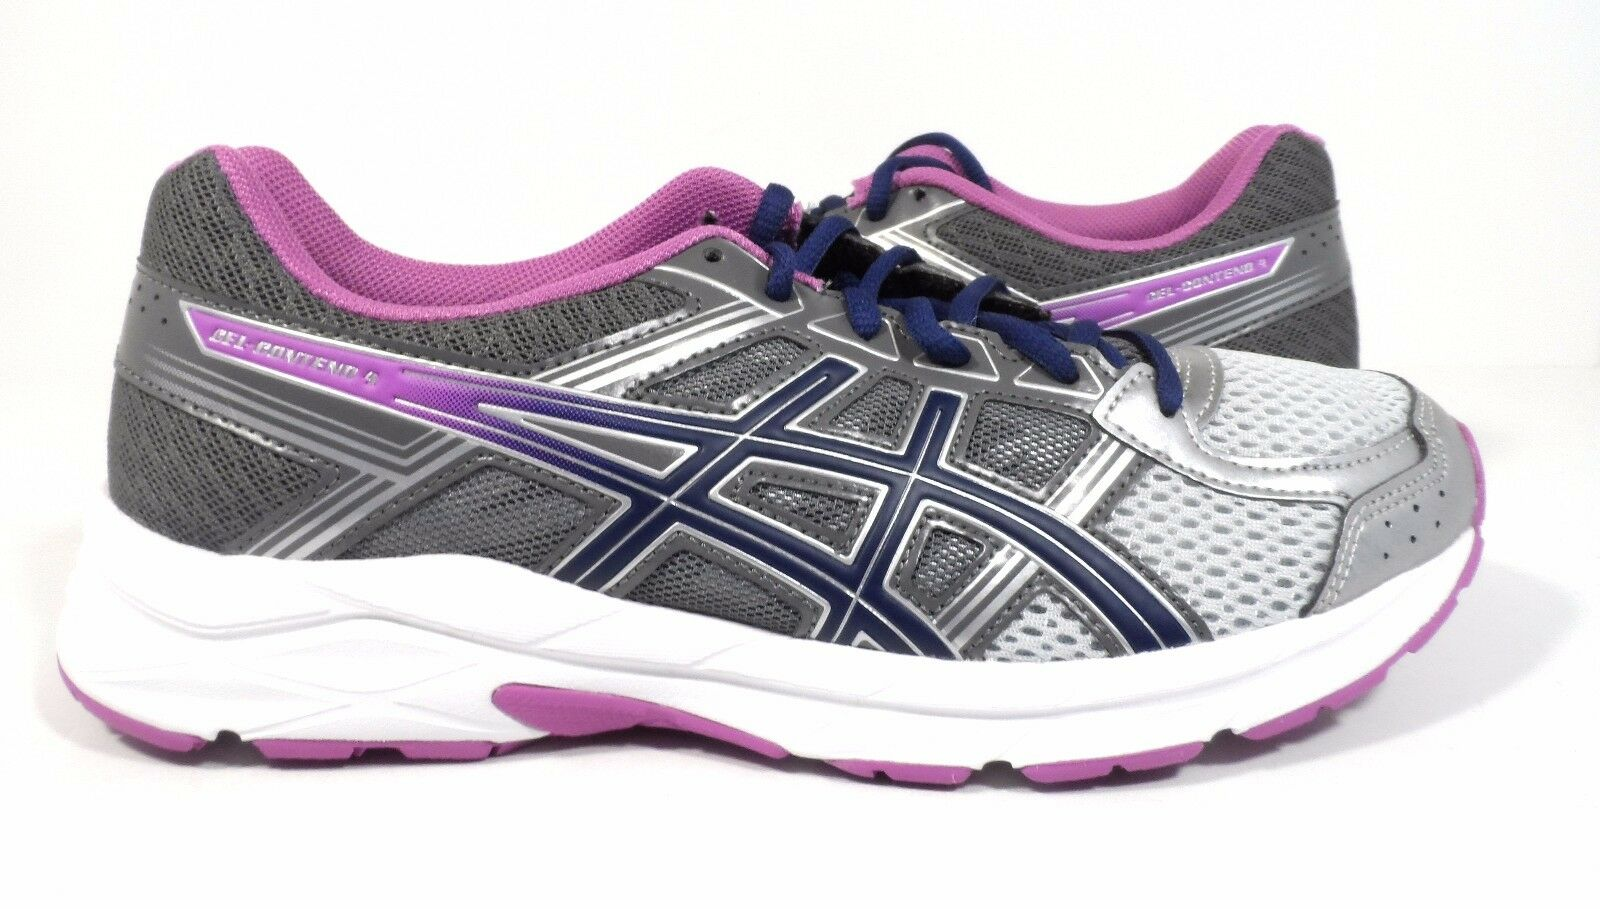 ASICS Women's Gel-Contend 4 Running shoes, Silver Campanula Carbon, 7.5 D (Wide)